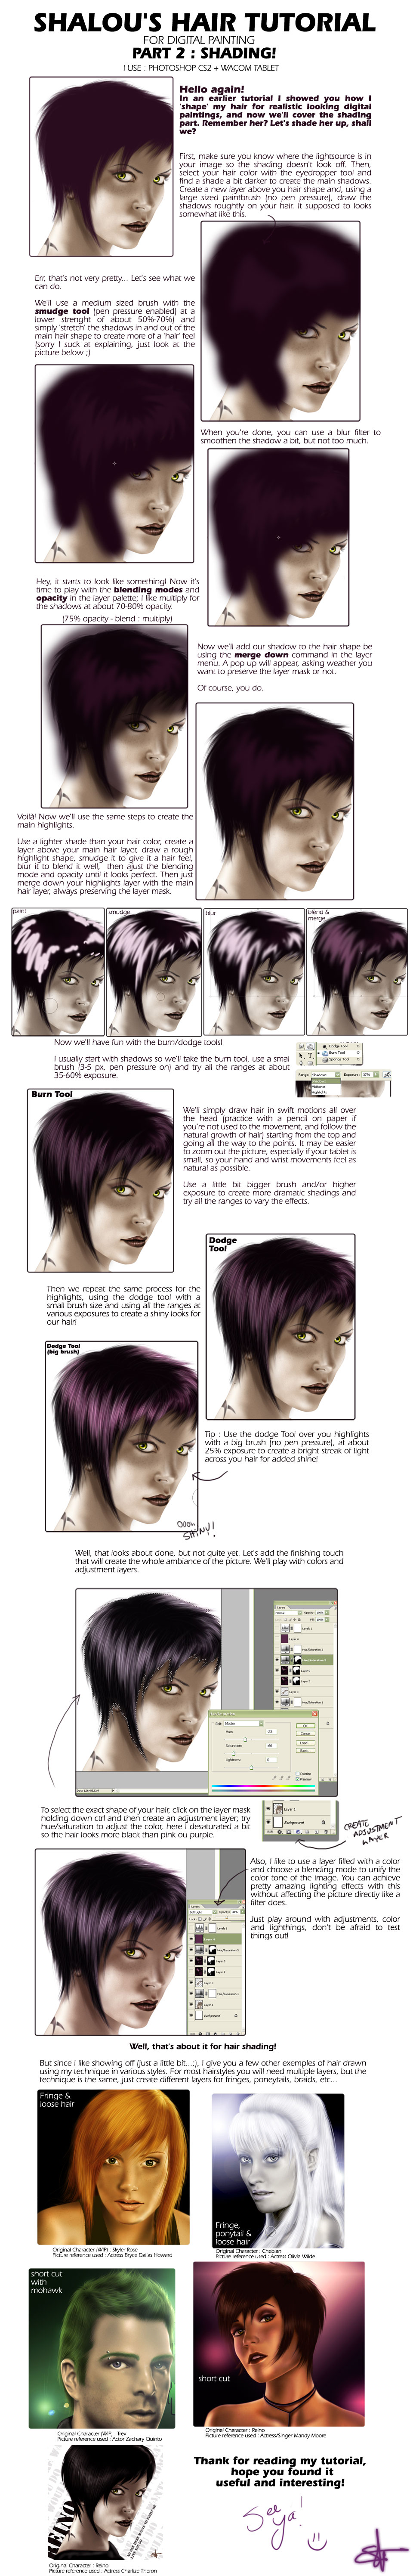 Hair Shading Tutorial by Shlapocalypse